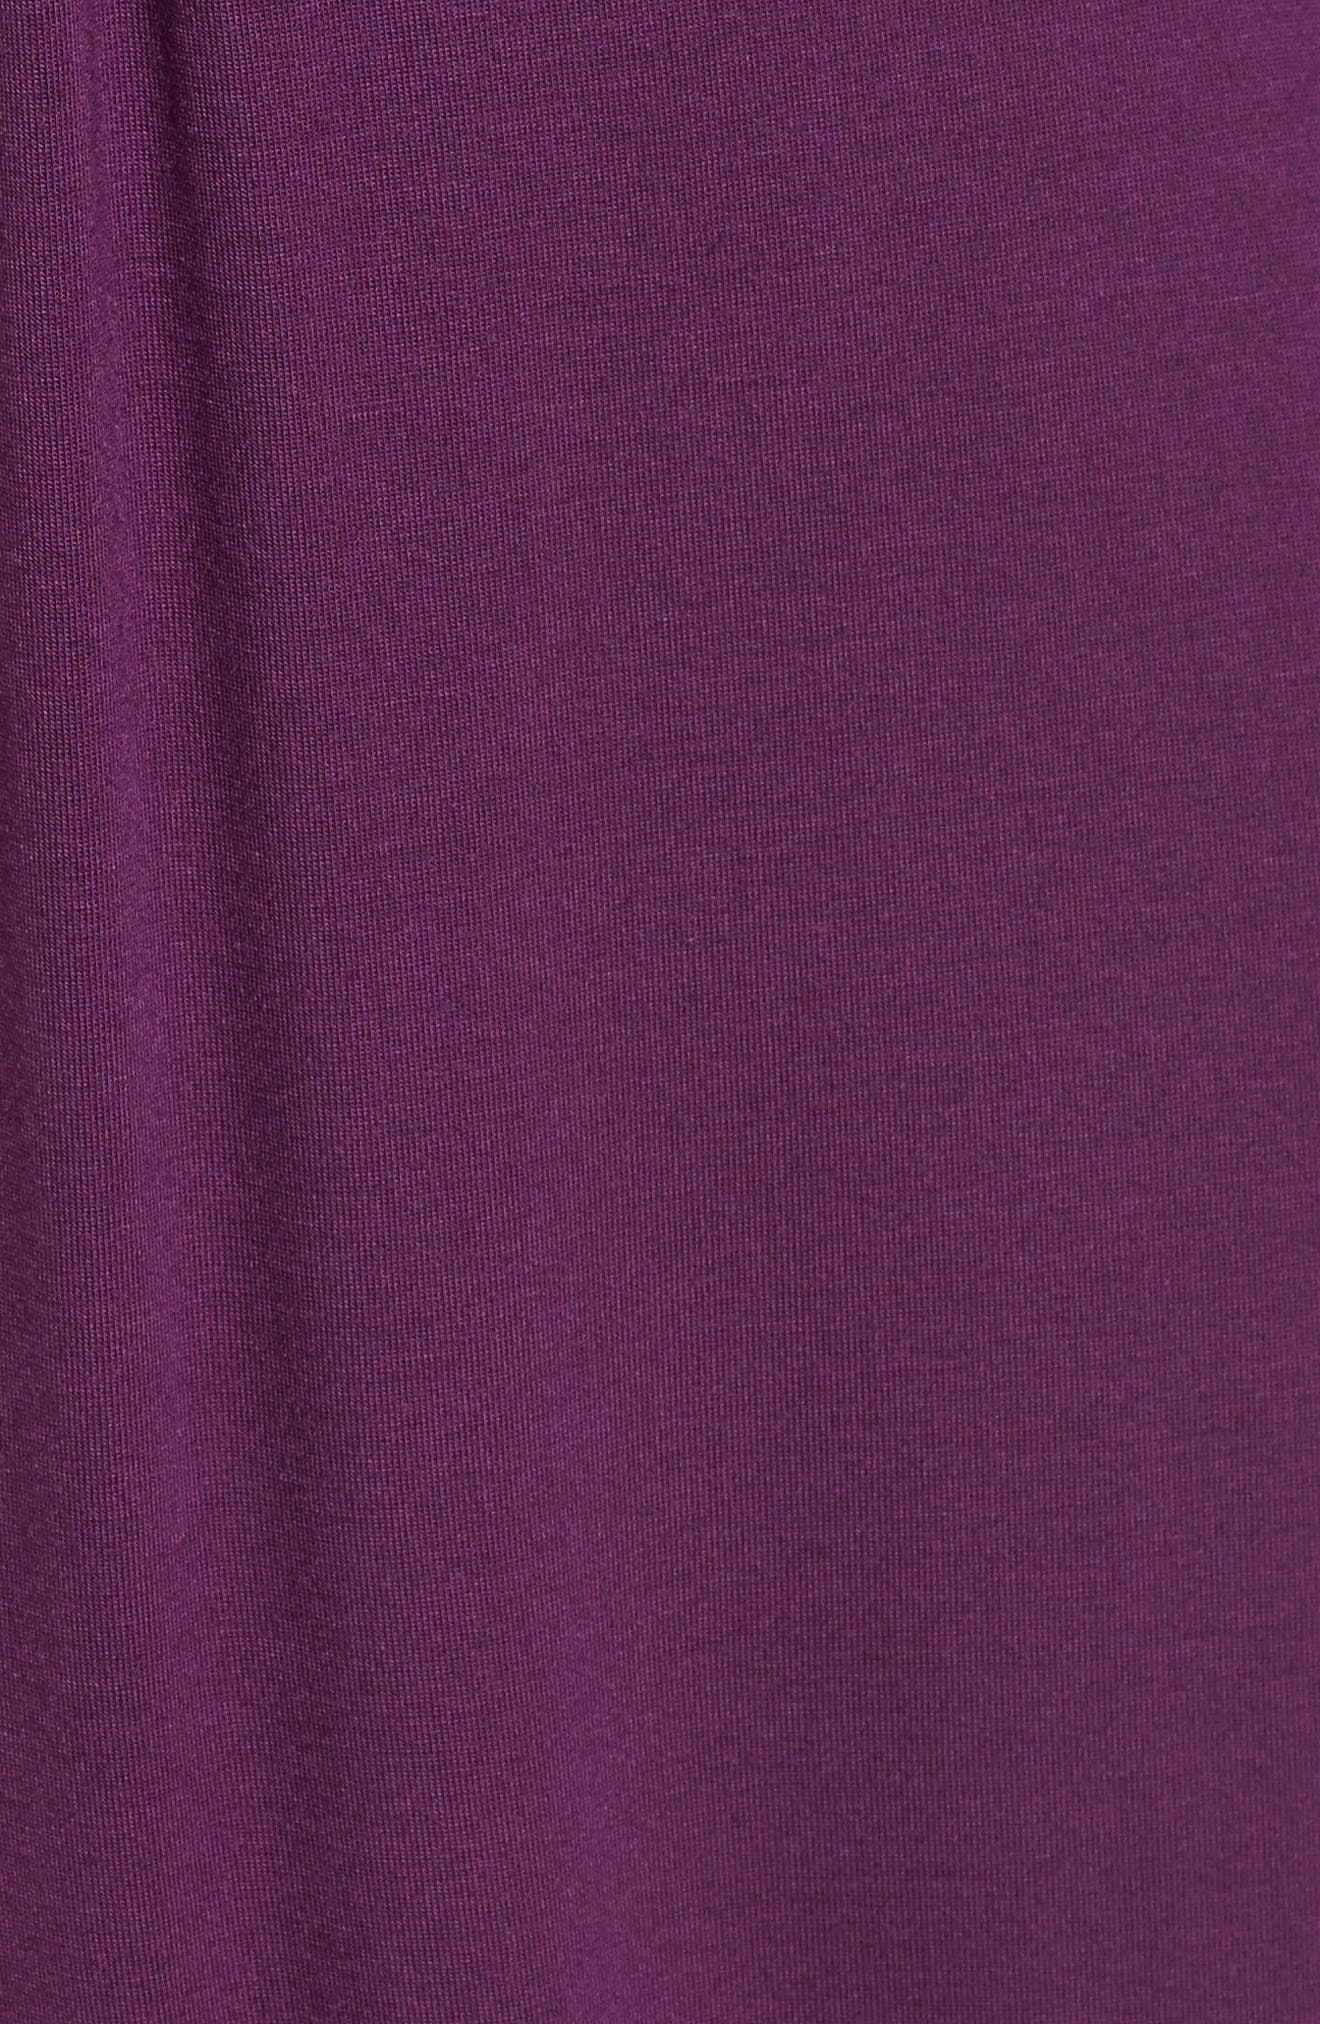 V-Neck Jersey Maxi Dress,                             Alternate thumbnail 5, color,                             PURPLE DARK